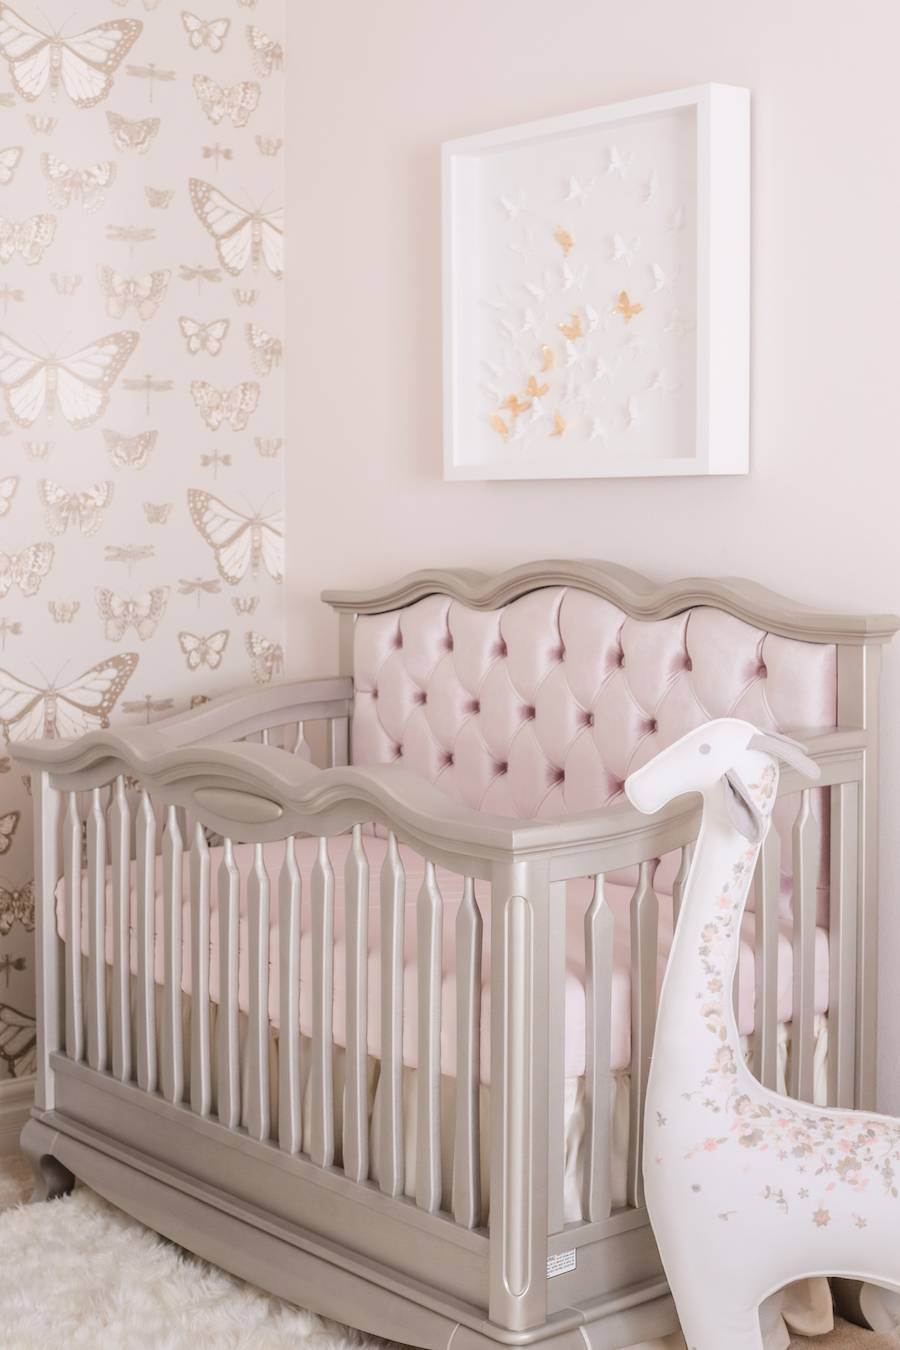 Traditional Butterfly Nursery with Mauve